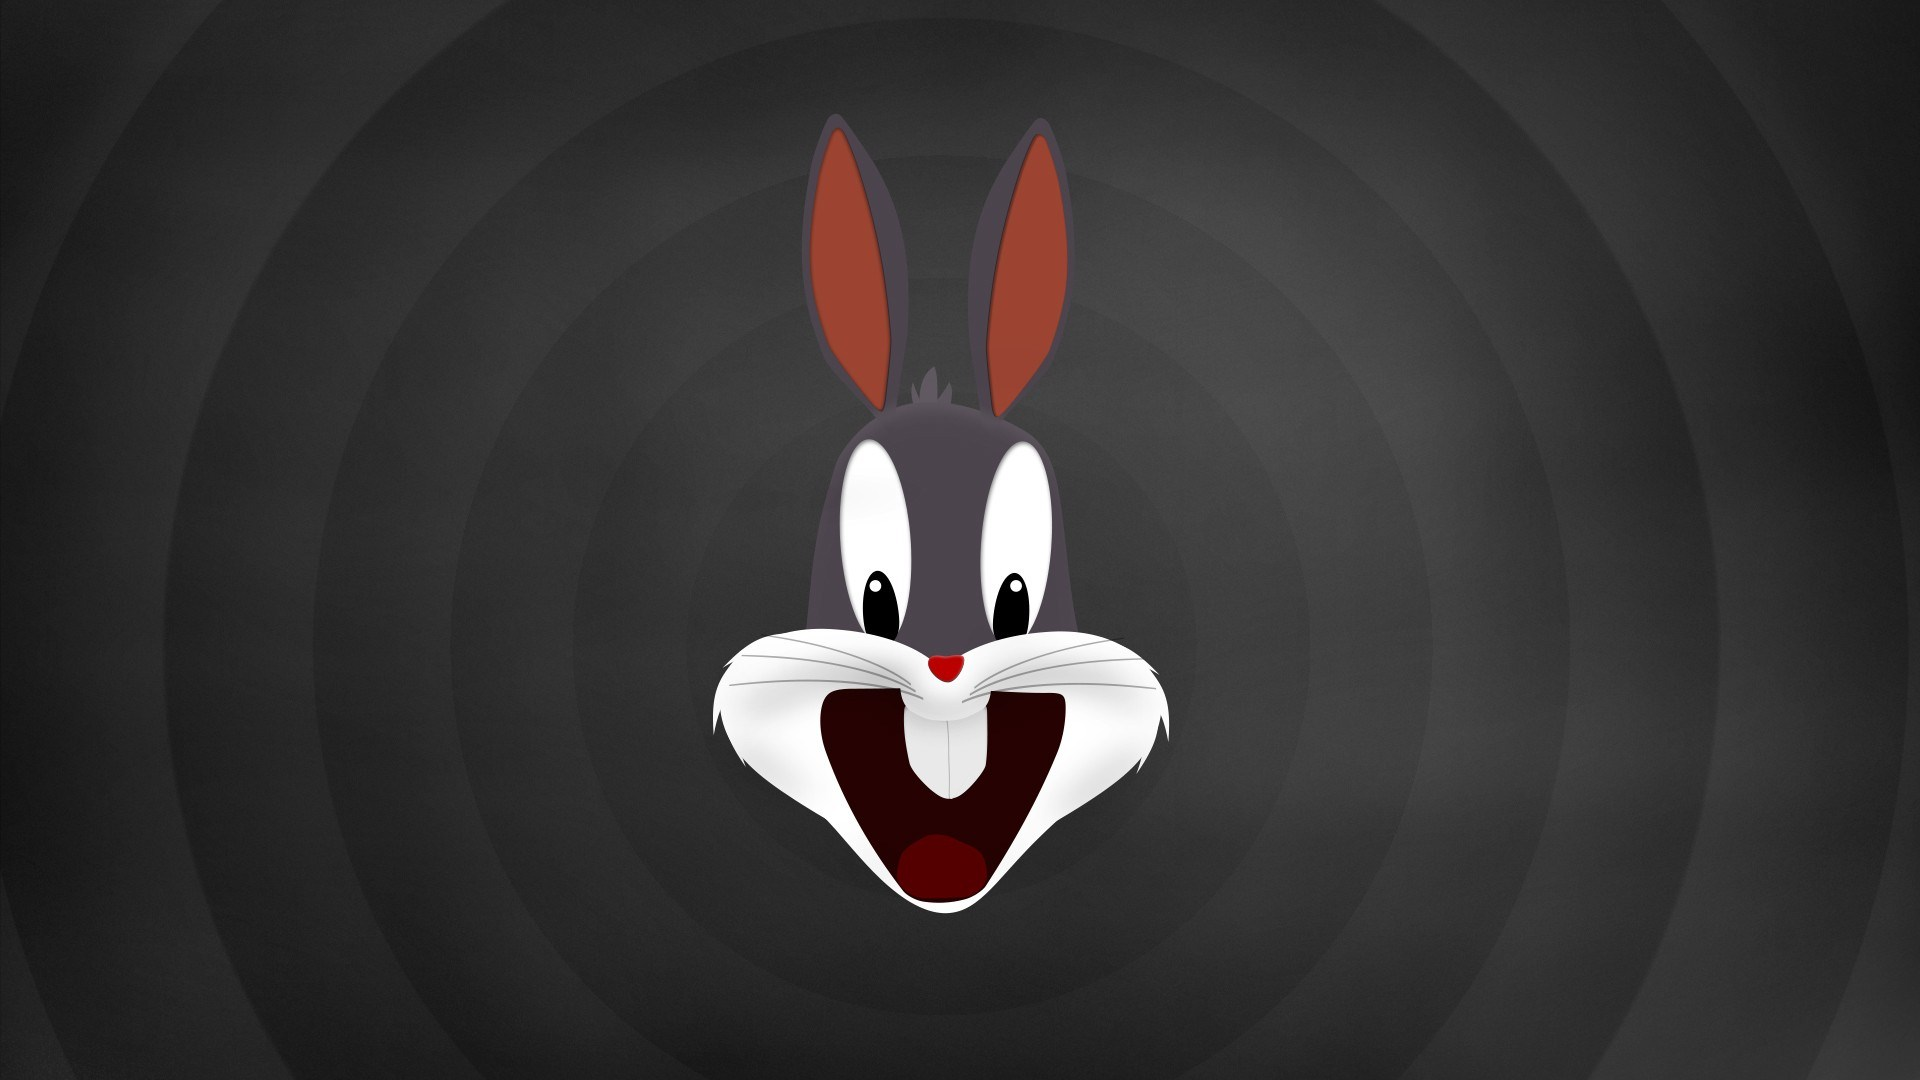 bugs bunny Computer Wallpapers Desktop Backgrounds 1920x1080